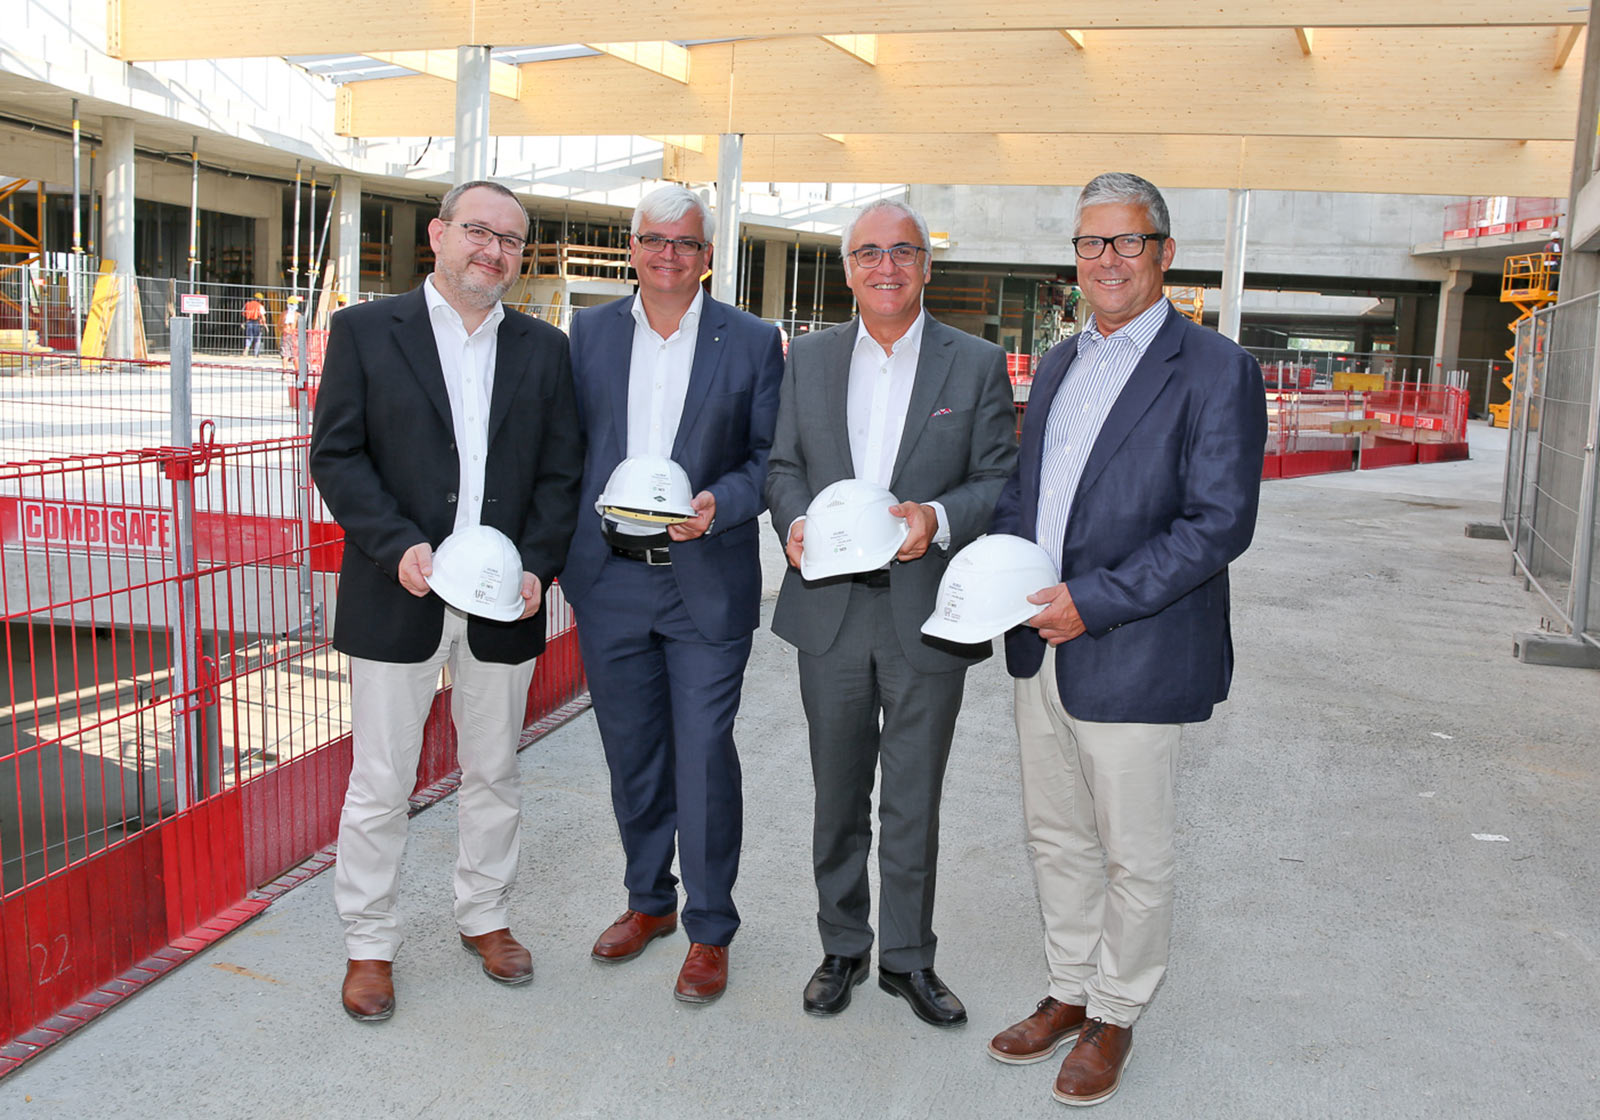 Architect Gerald Holy, ATP Lead Project Manager, Marcus Wild, Chairman of the Executive Board of SES, Hagop Hiesinger, SES Project Leader for HUMA and the engineer Harald Hanappi, ATP's Site Supervisor (from left to right) Photo: Katharina Schiffl